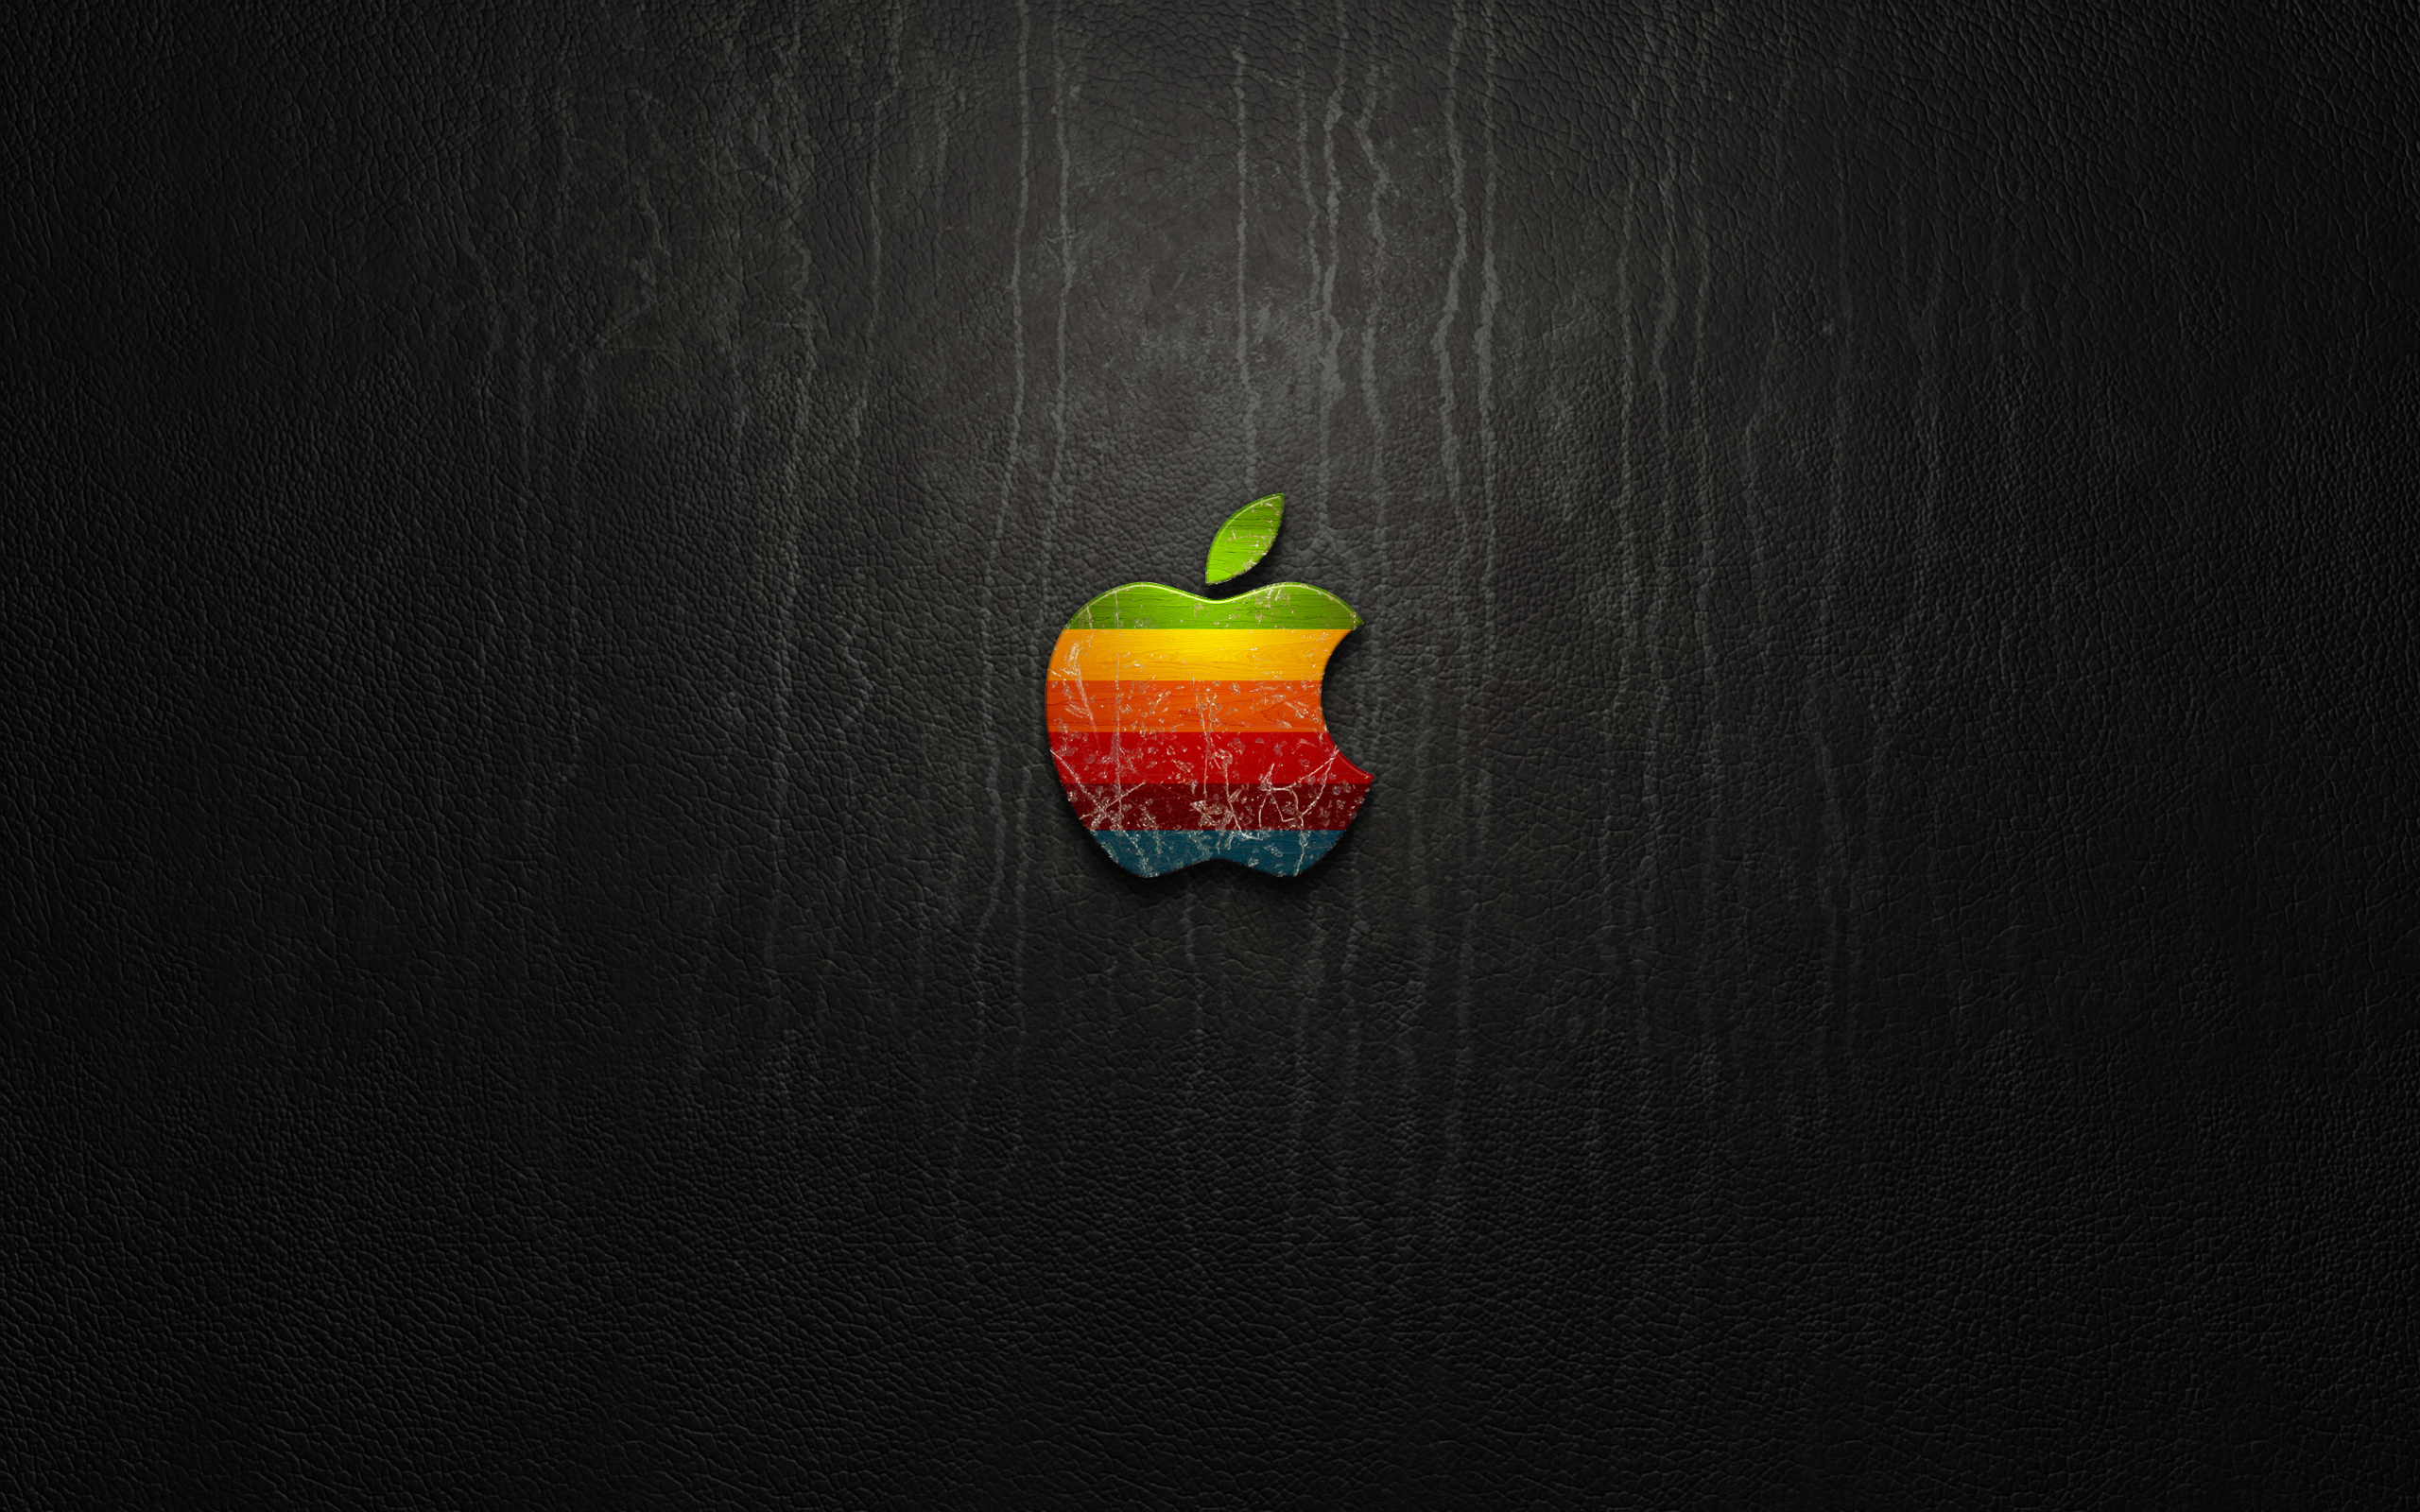 wallpapers 4k-hd Apple-alegorias.es (3)